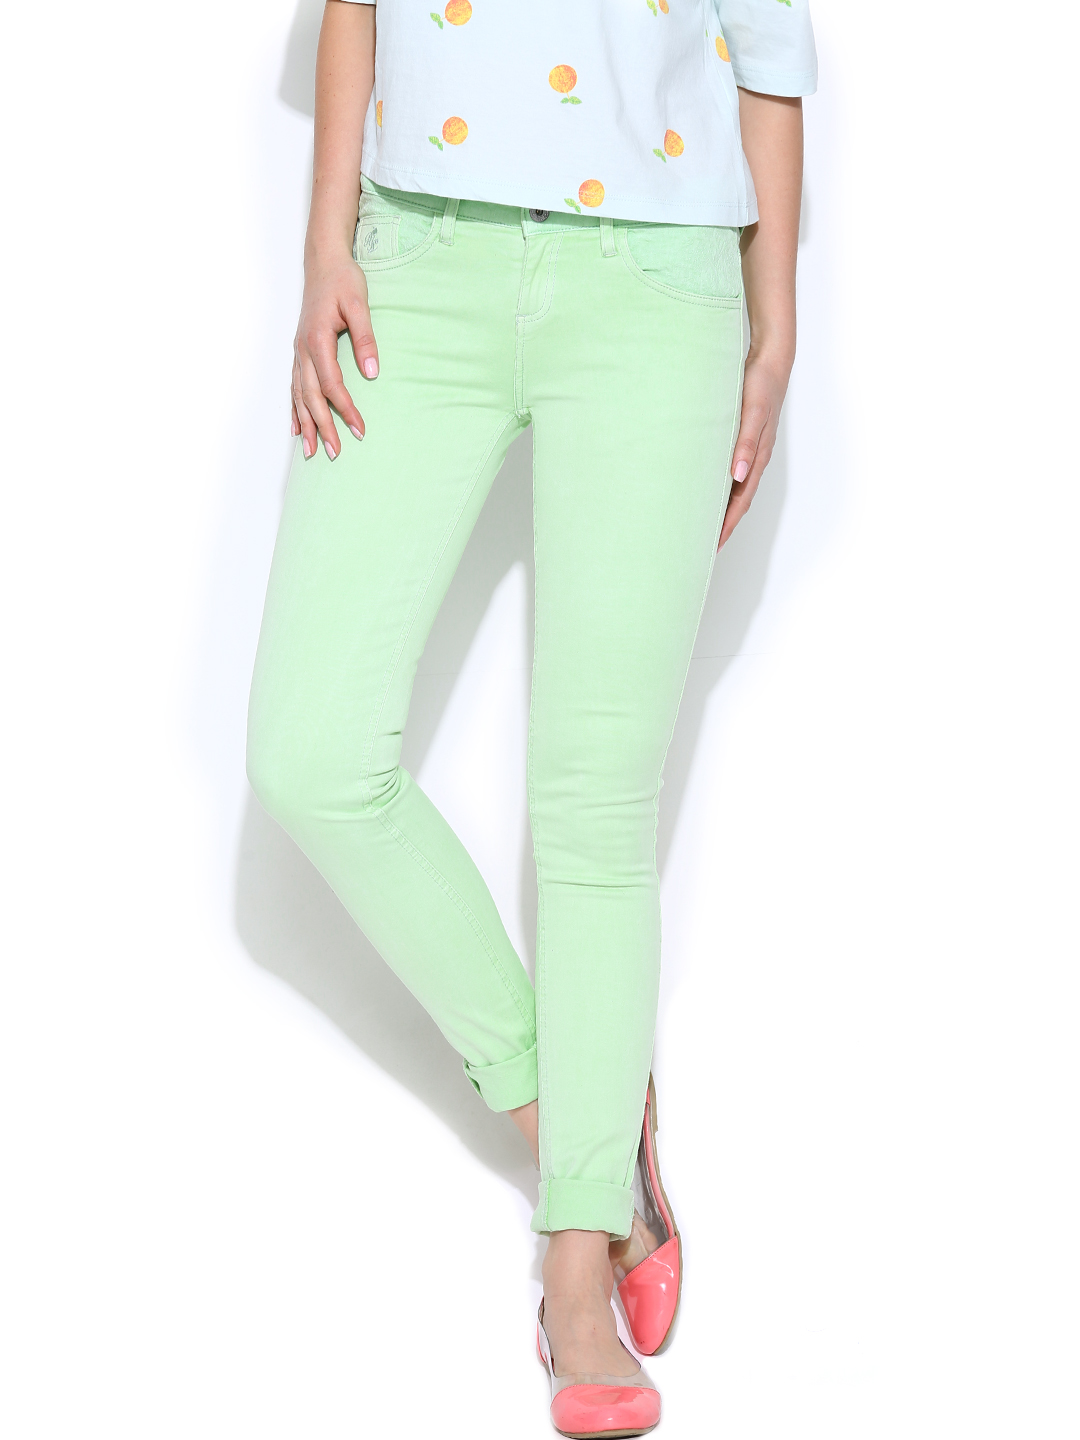 Simple Sessions Zero Ski Snowboard Pants Mint Green Womens | EBay